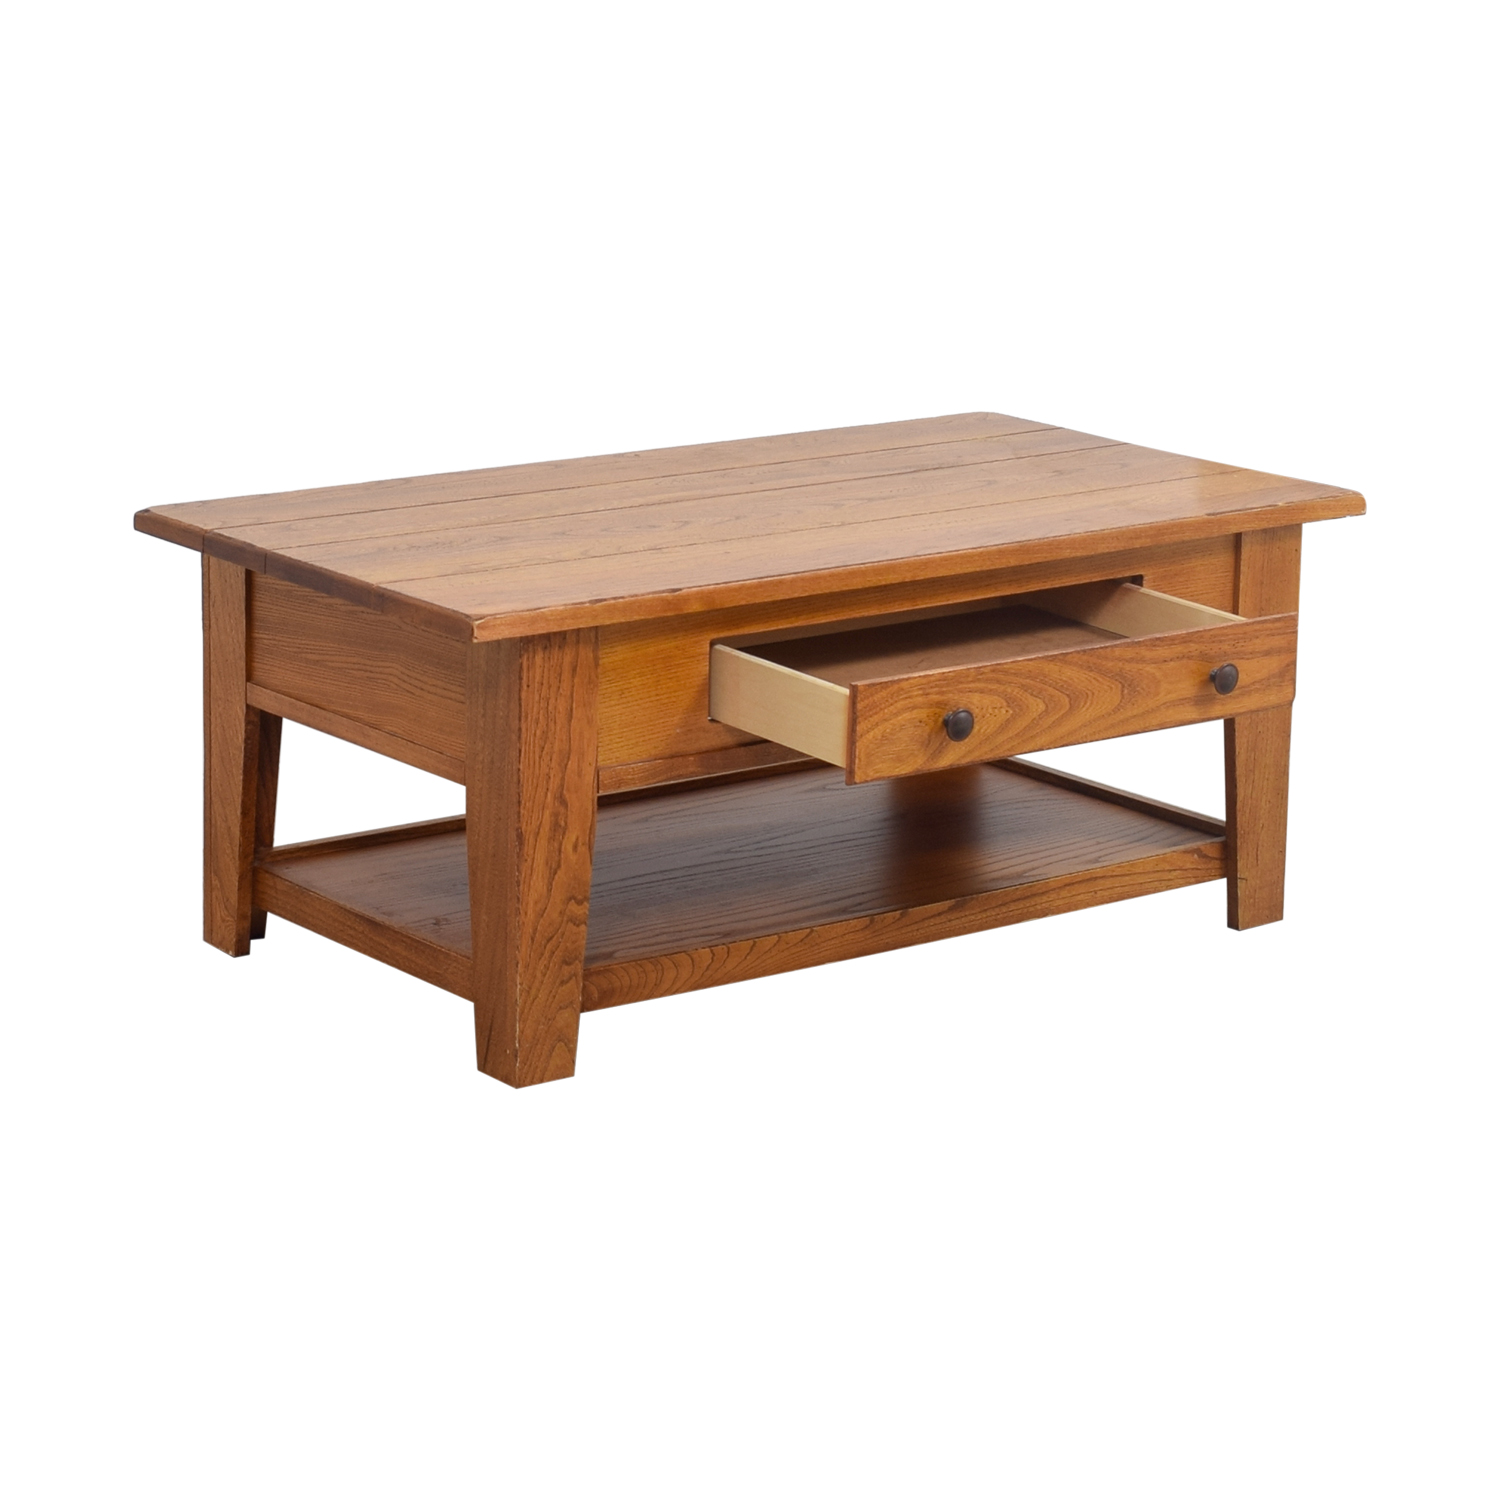 Wood Single Drawer Coffee Table sale